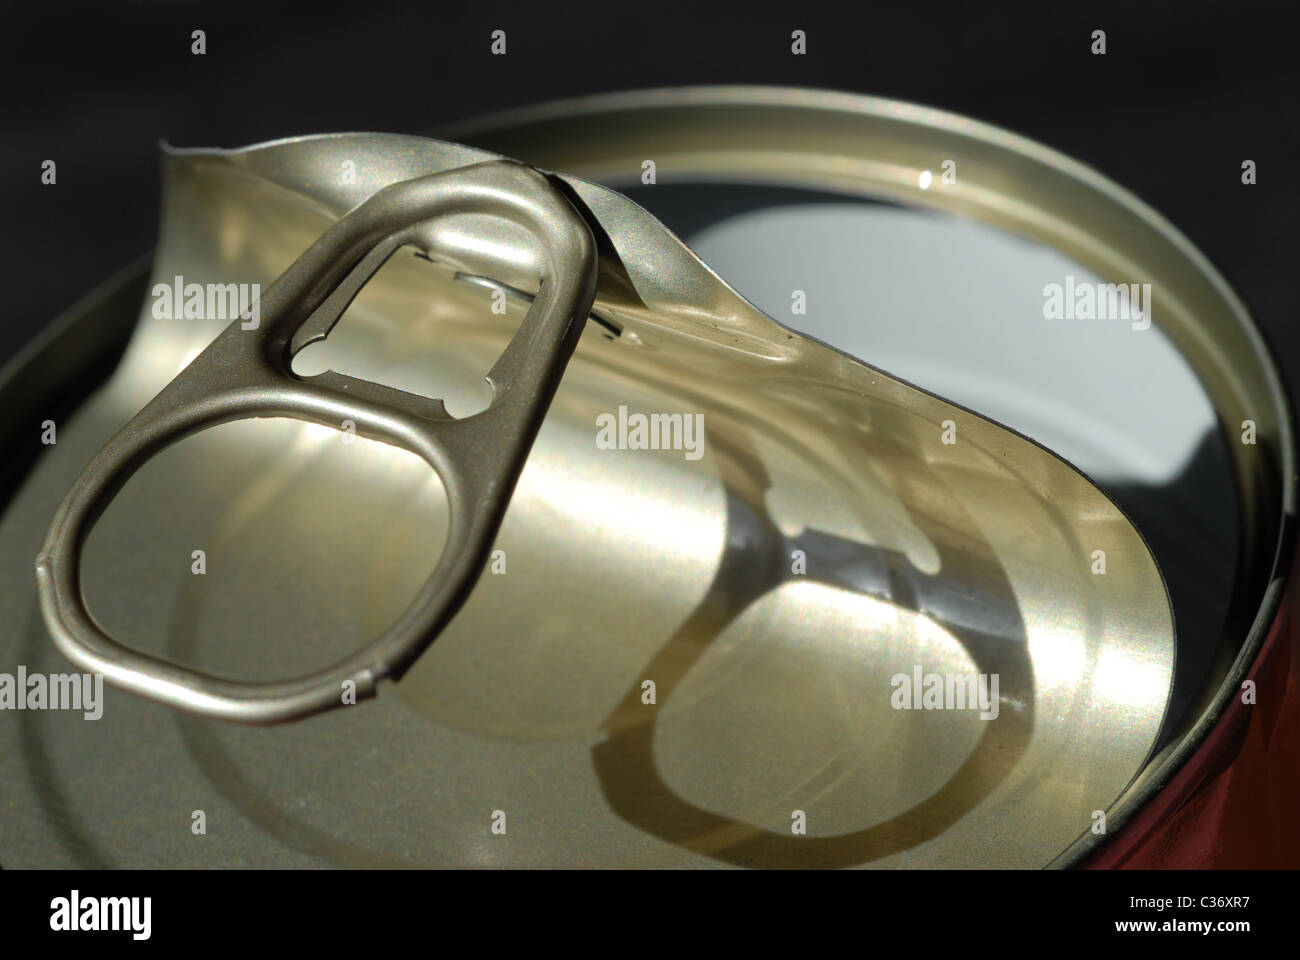 Open can with BPA lining. - Stock Image